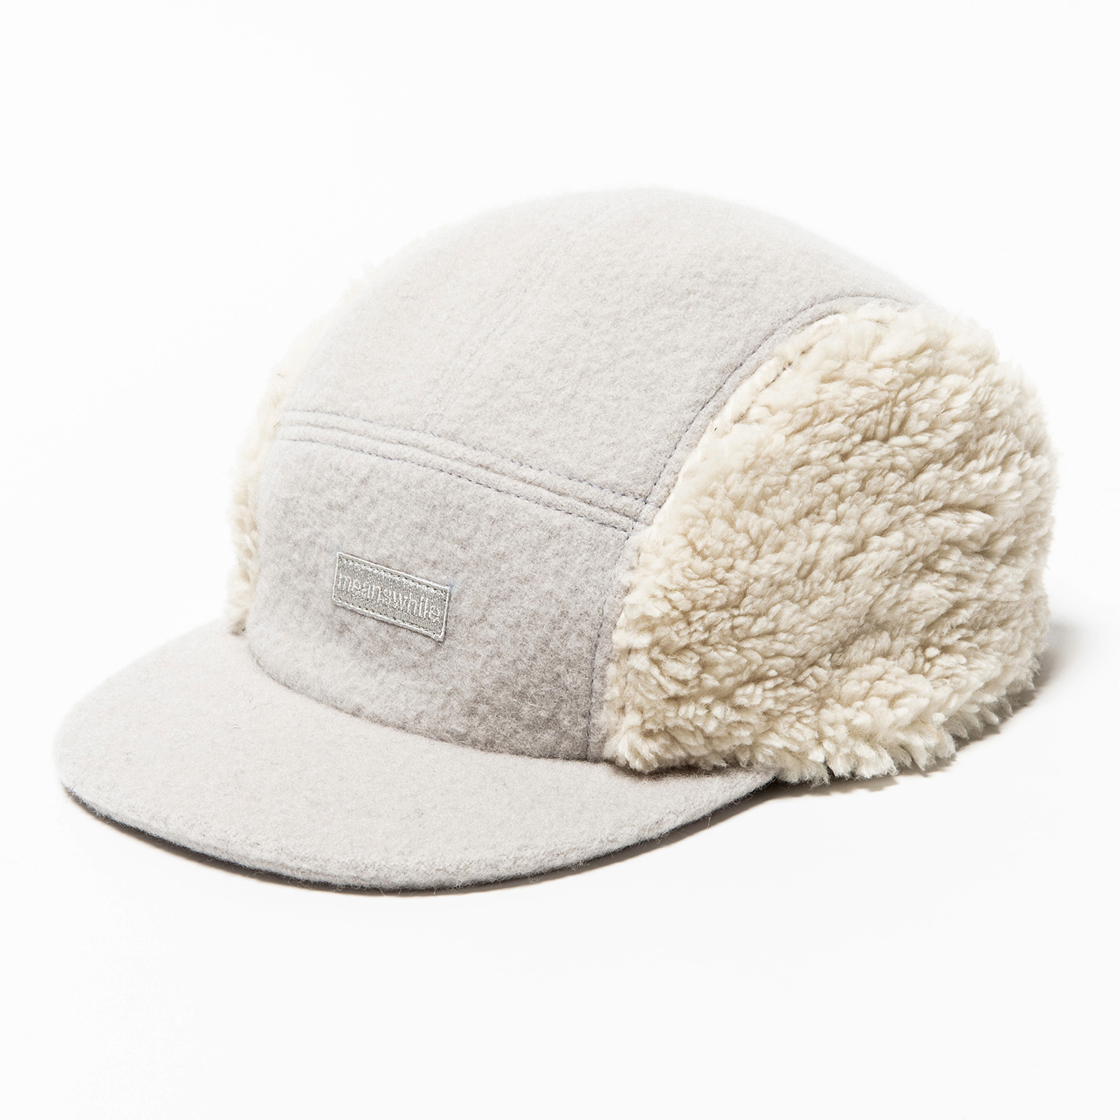 Retro Fleece Melton Jet Cap G.White